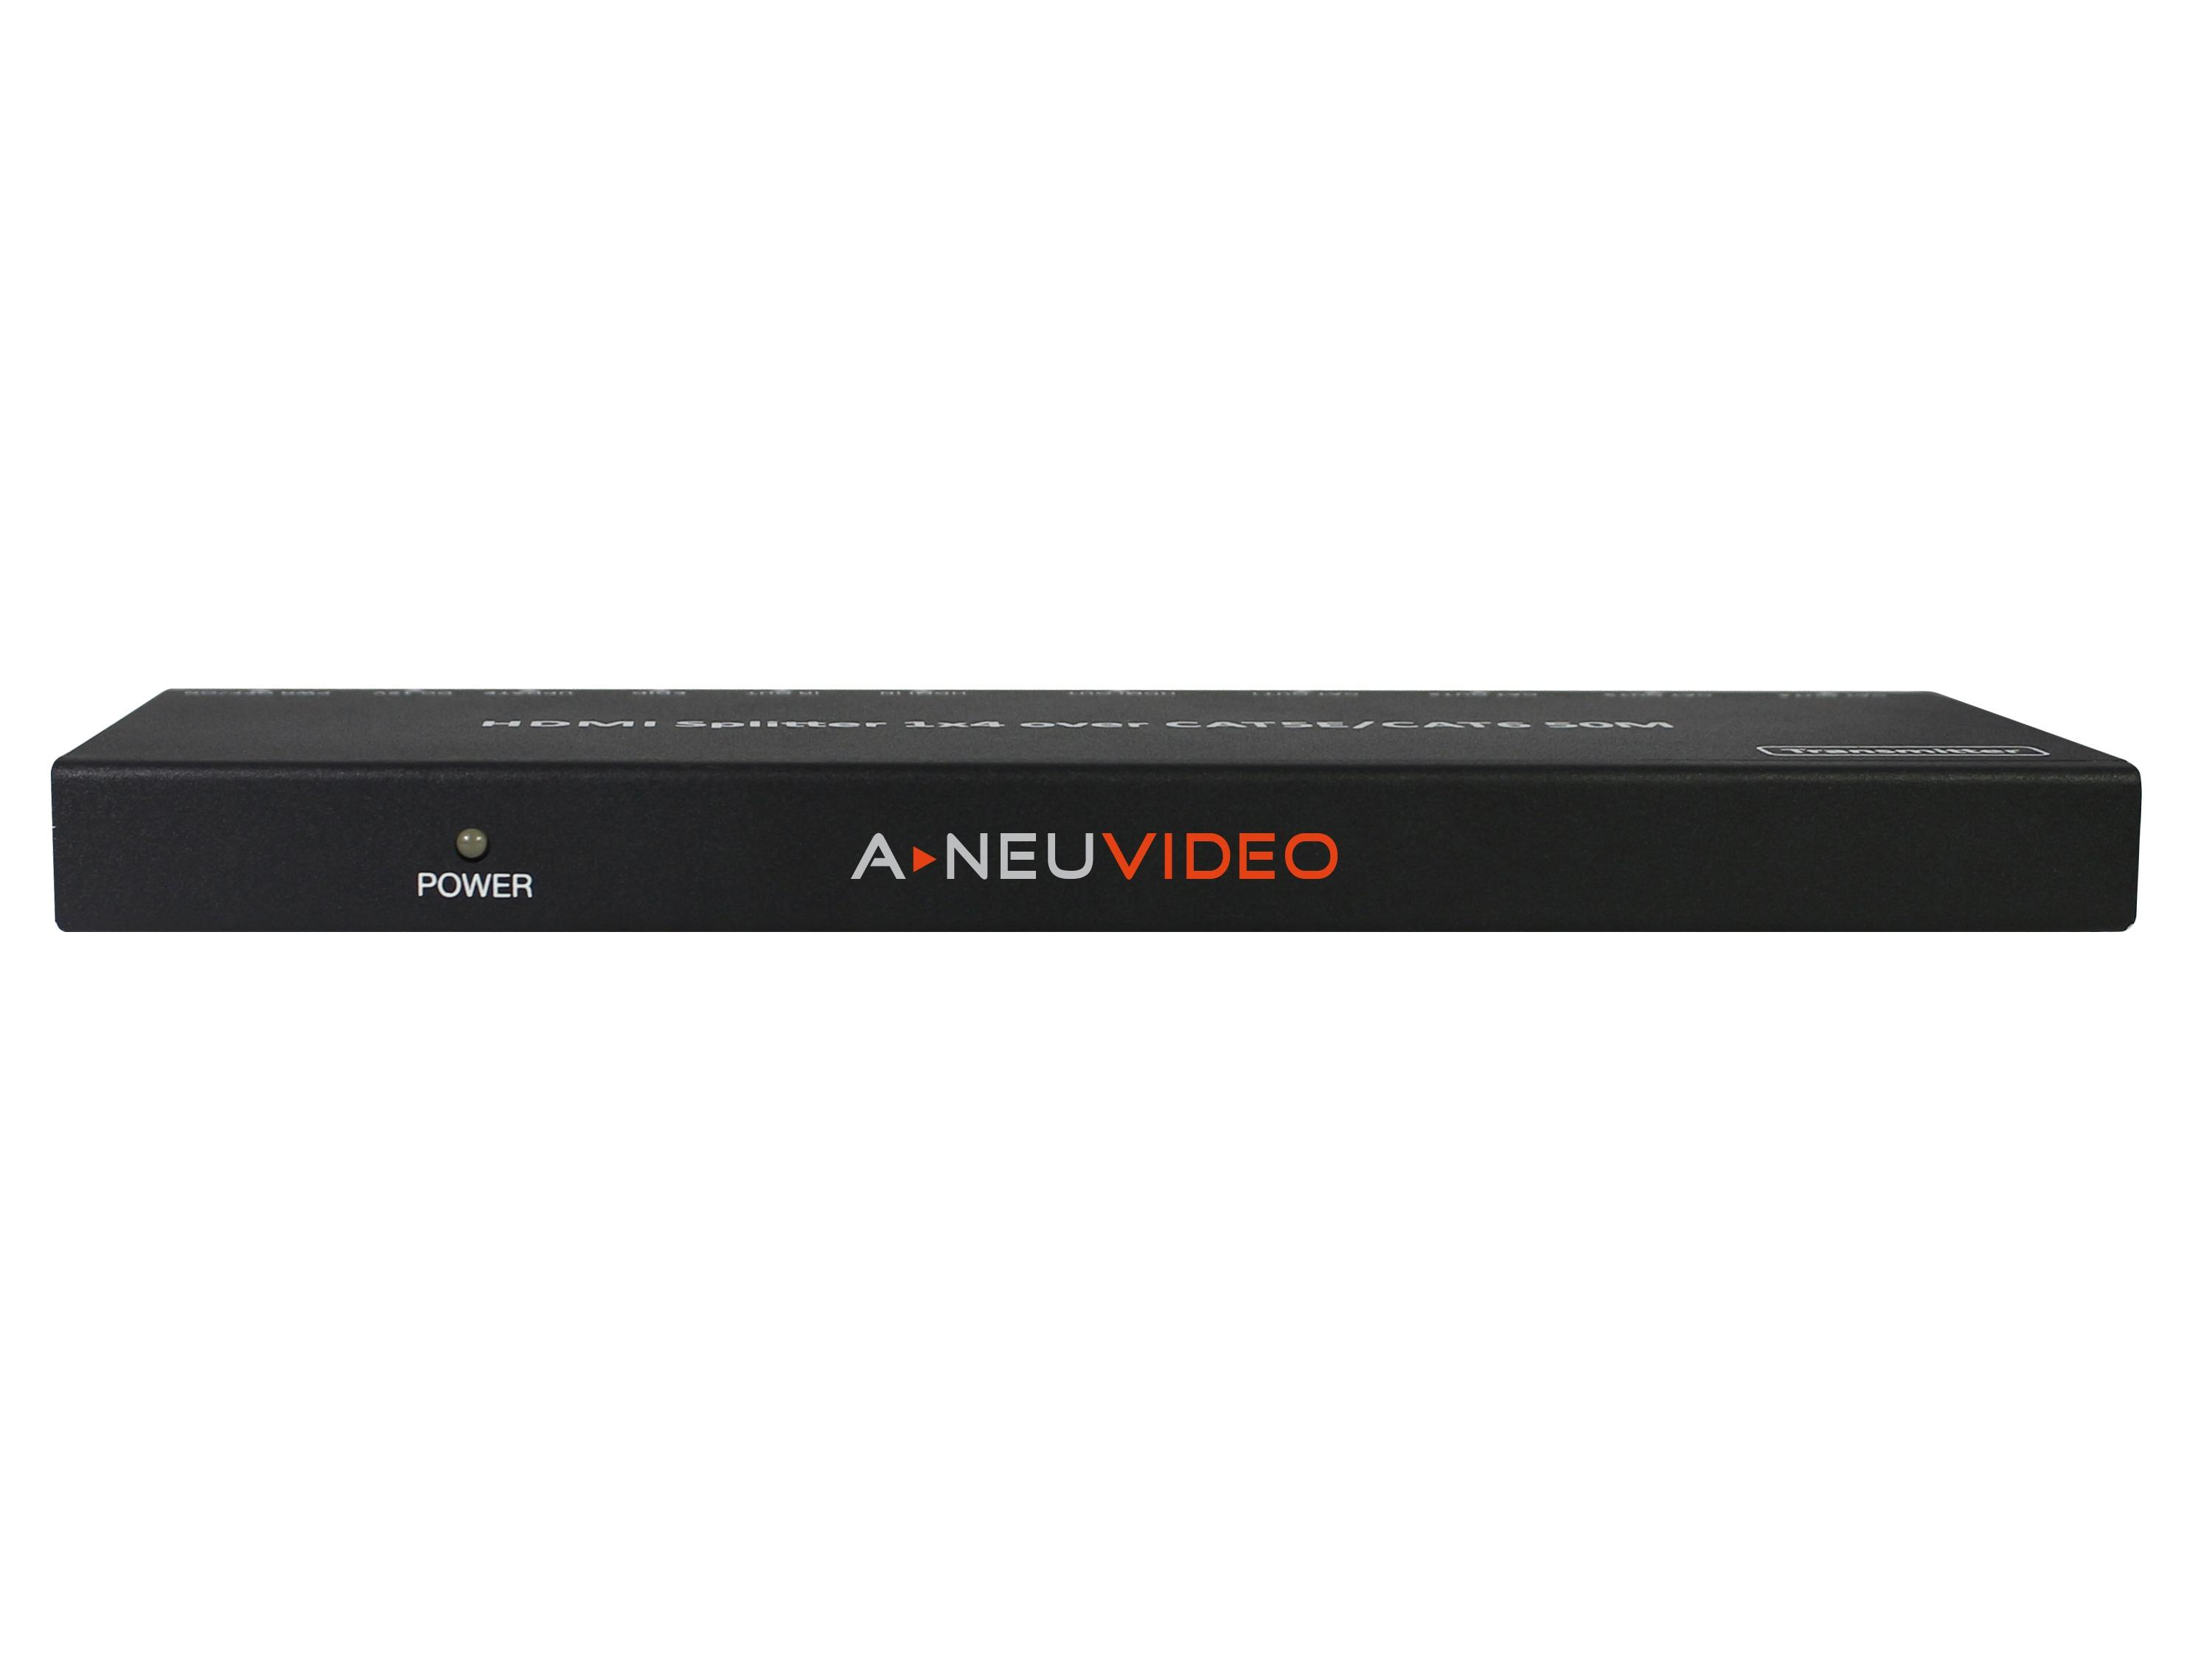 A-NeuVideo ANI-0104POE 1x4 HDMI Extender/Splitter with Receivers Over CAT5e/6 PoE